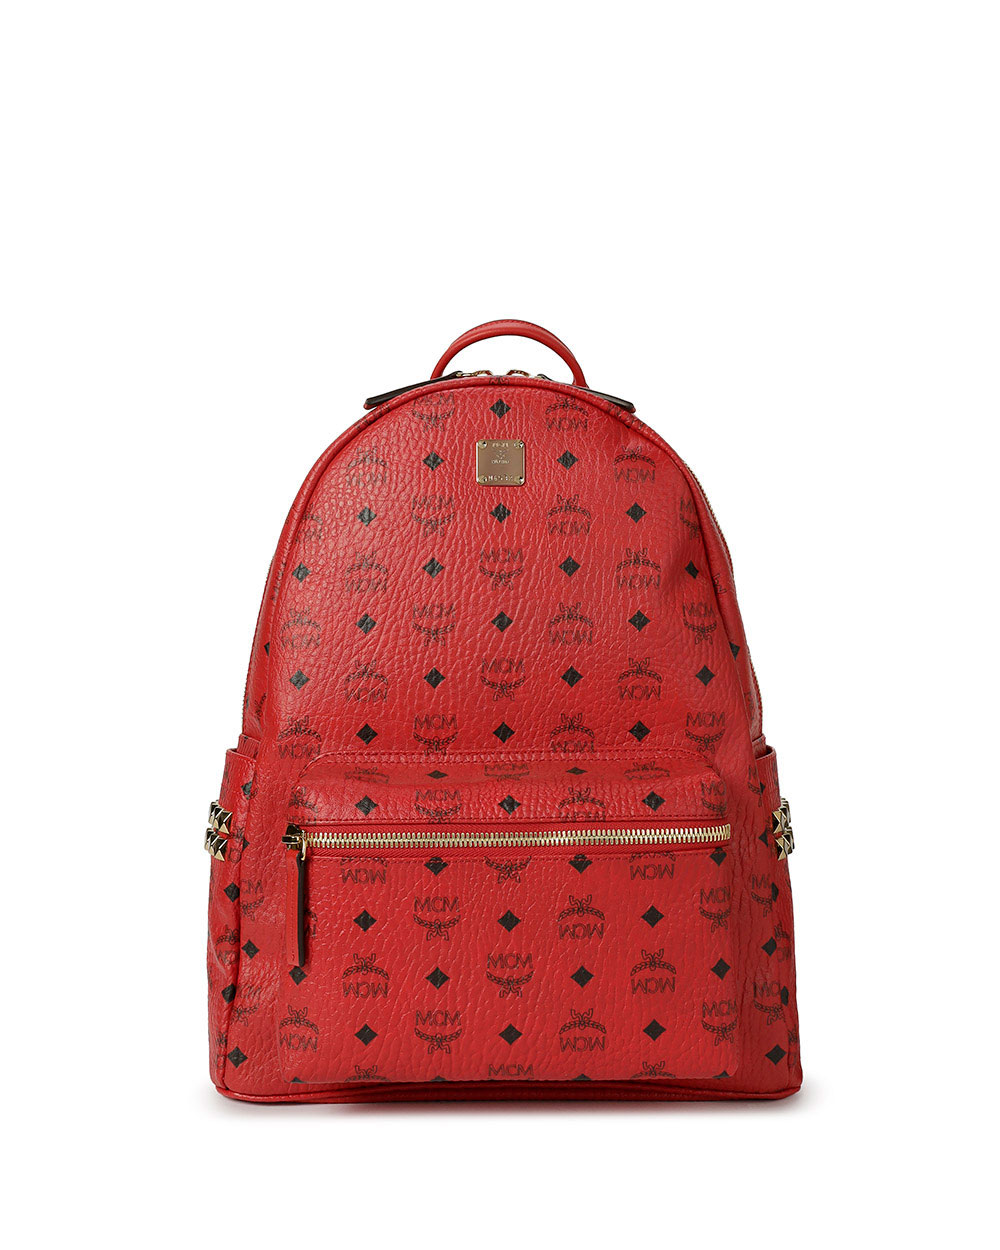 Printed Studded Leather Backpack